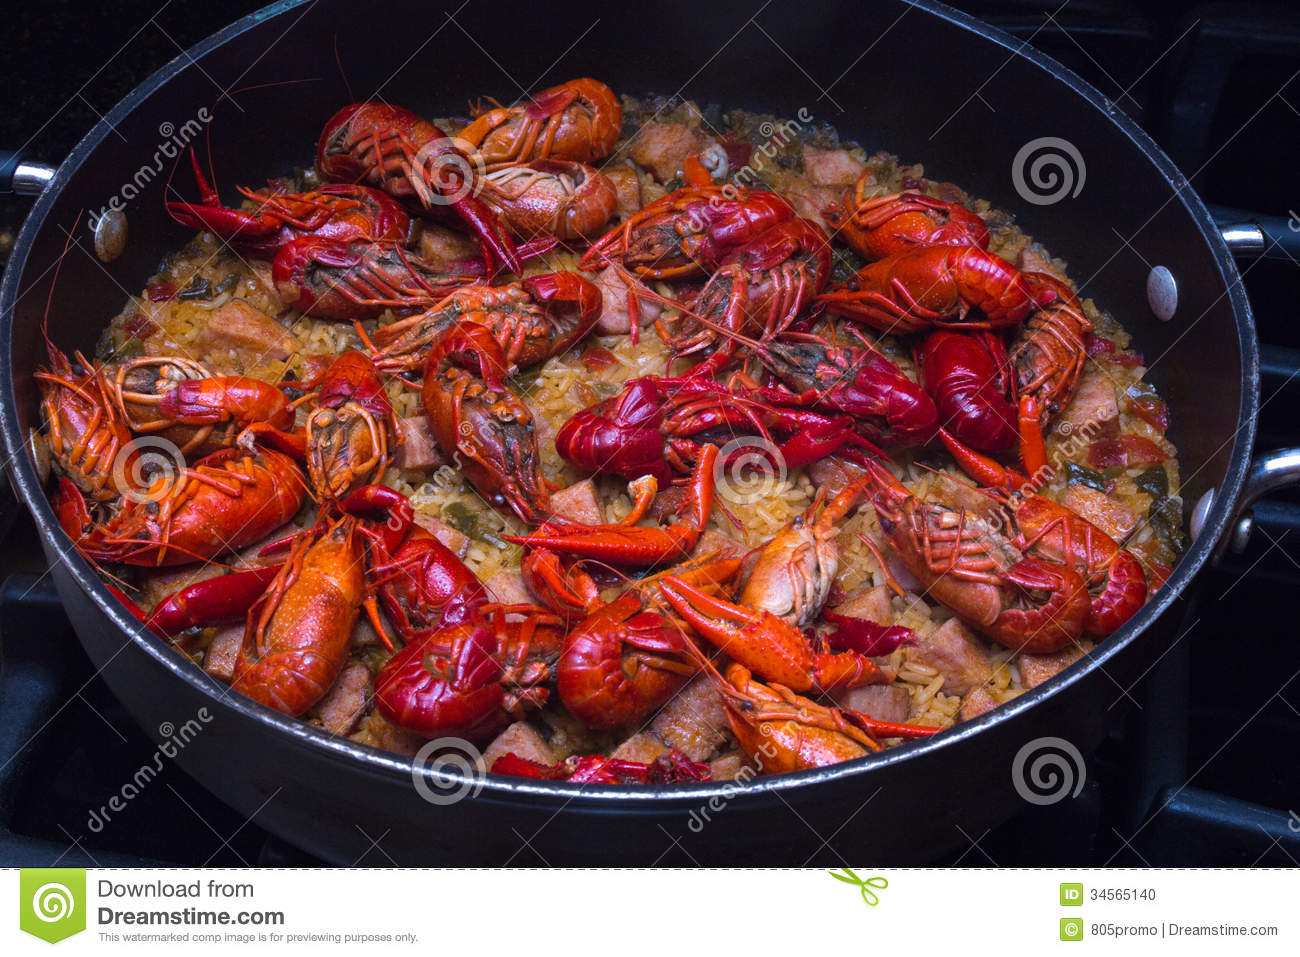 beautiful skillet full of crawfish jambalaya. This dish was created ...